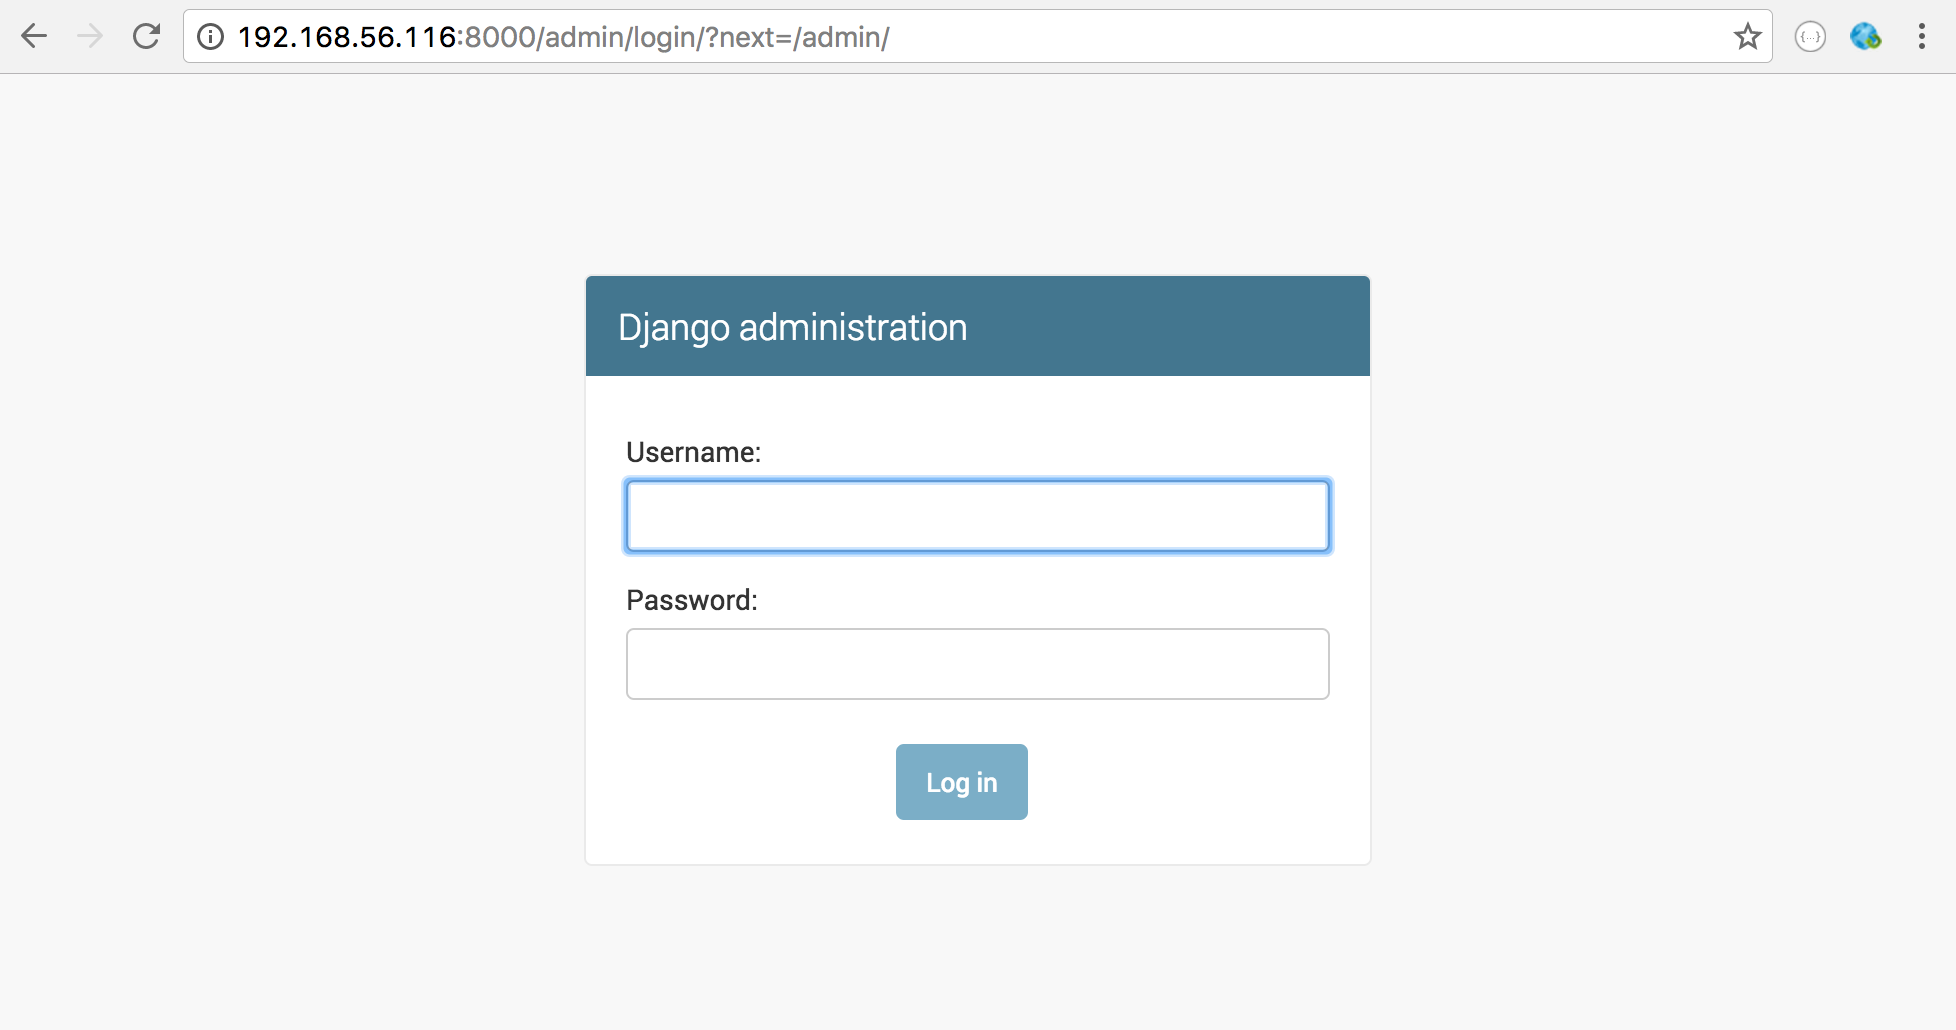 03-django-administration-login